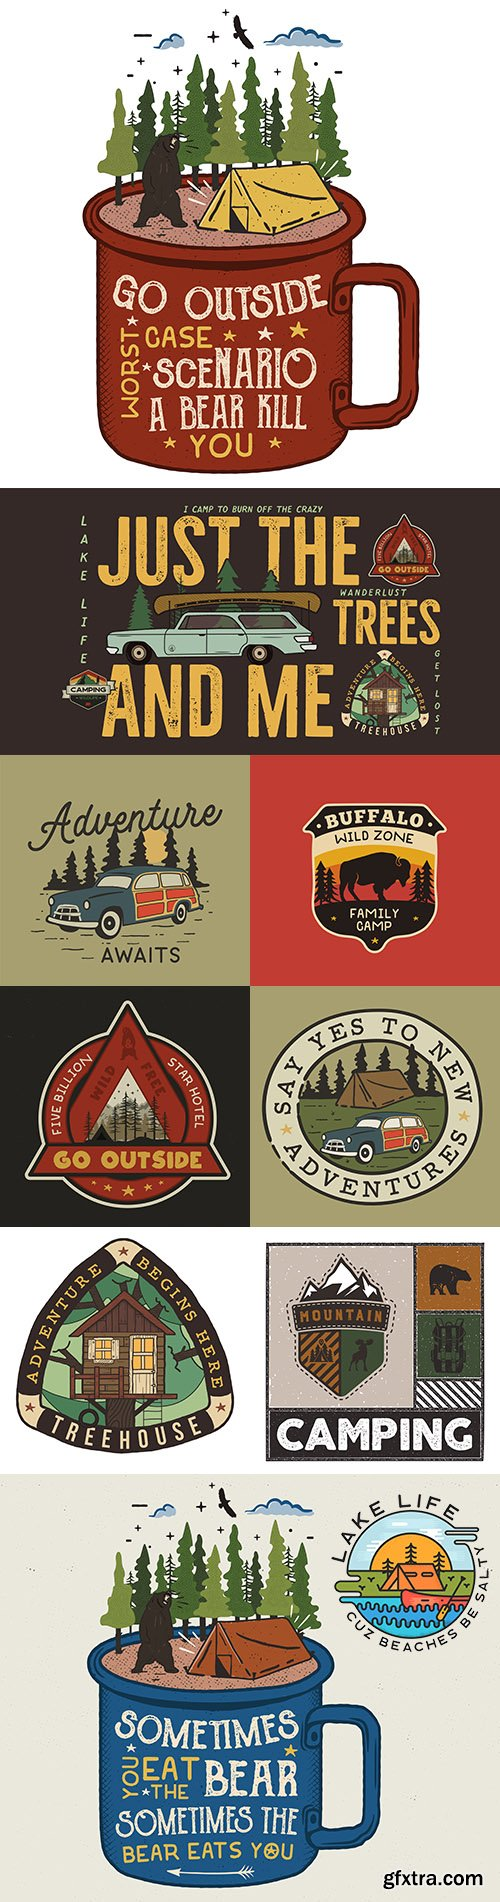 Camping badge design and adventure logo with quote